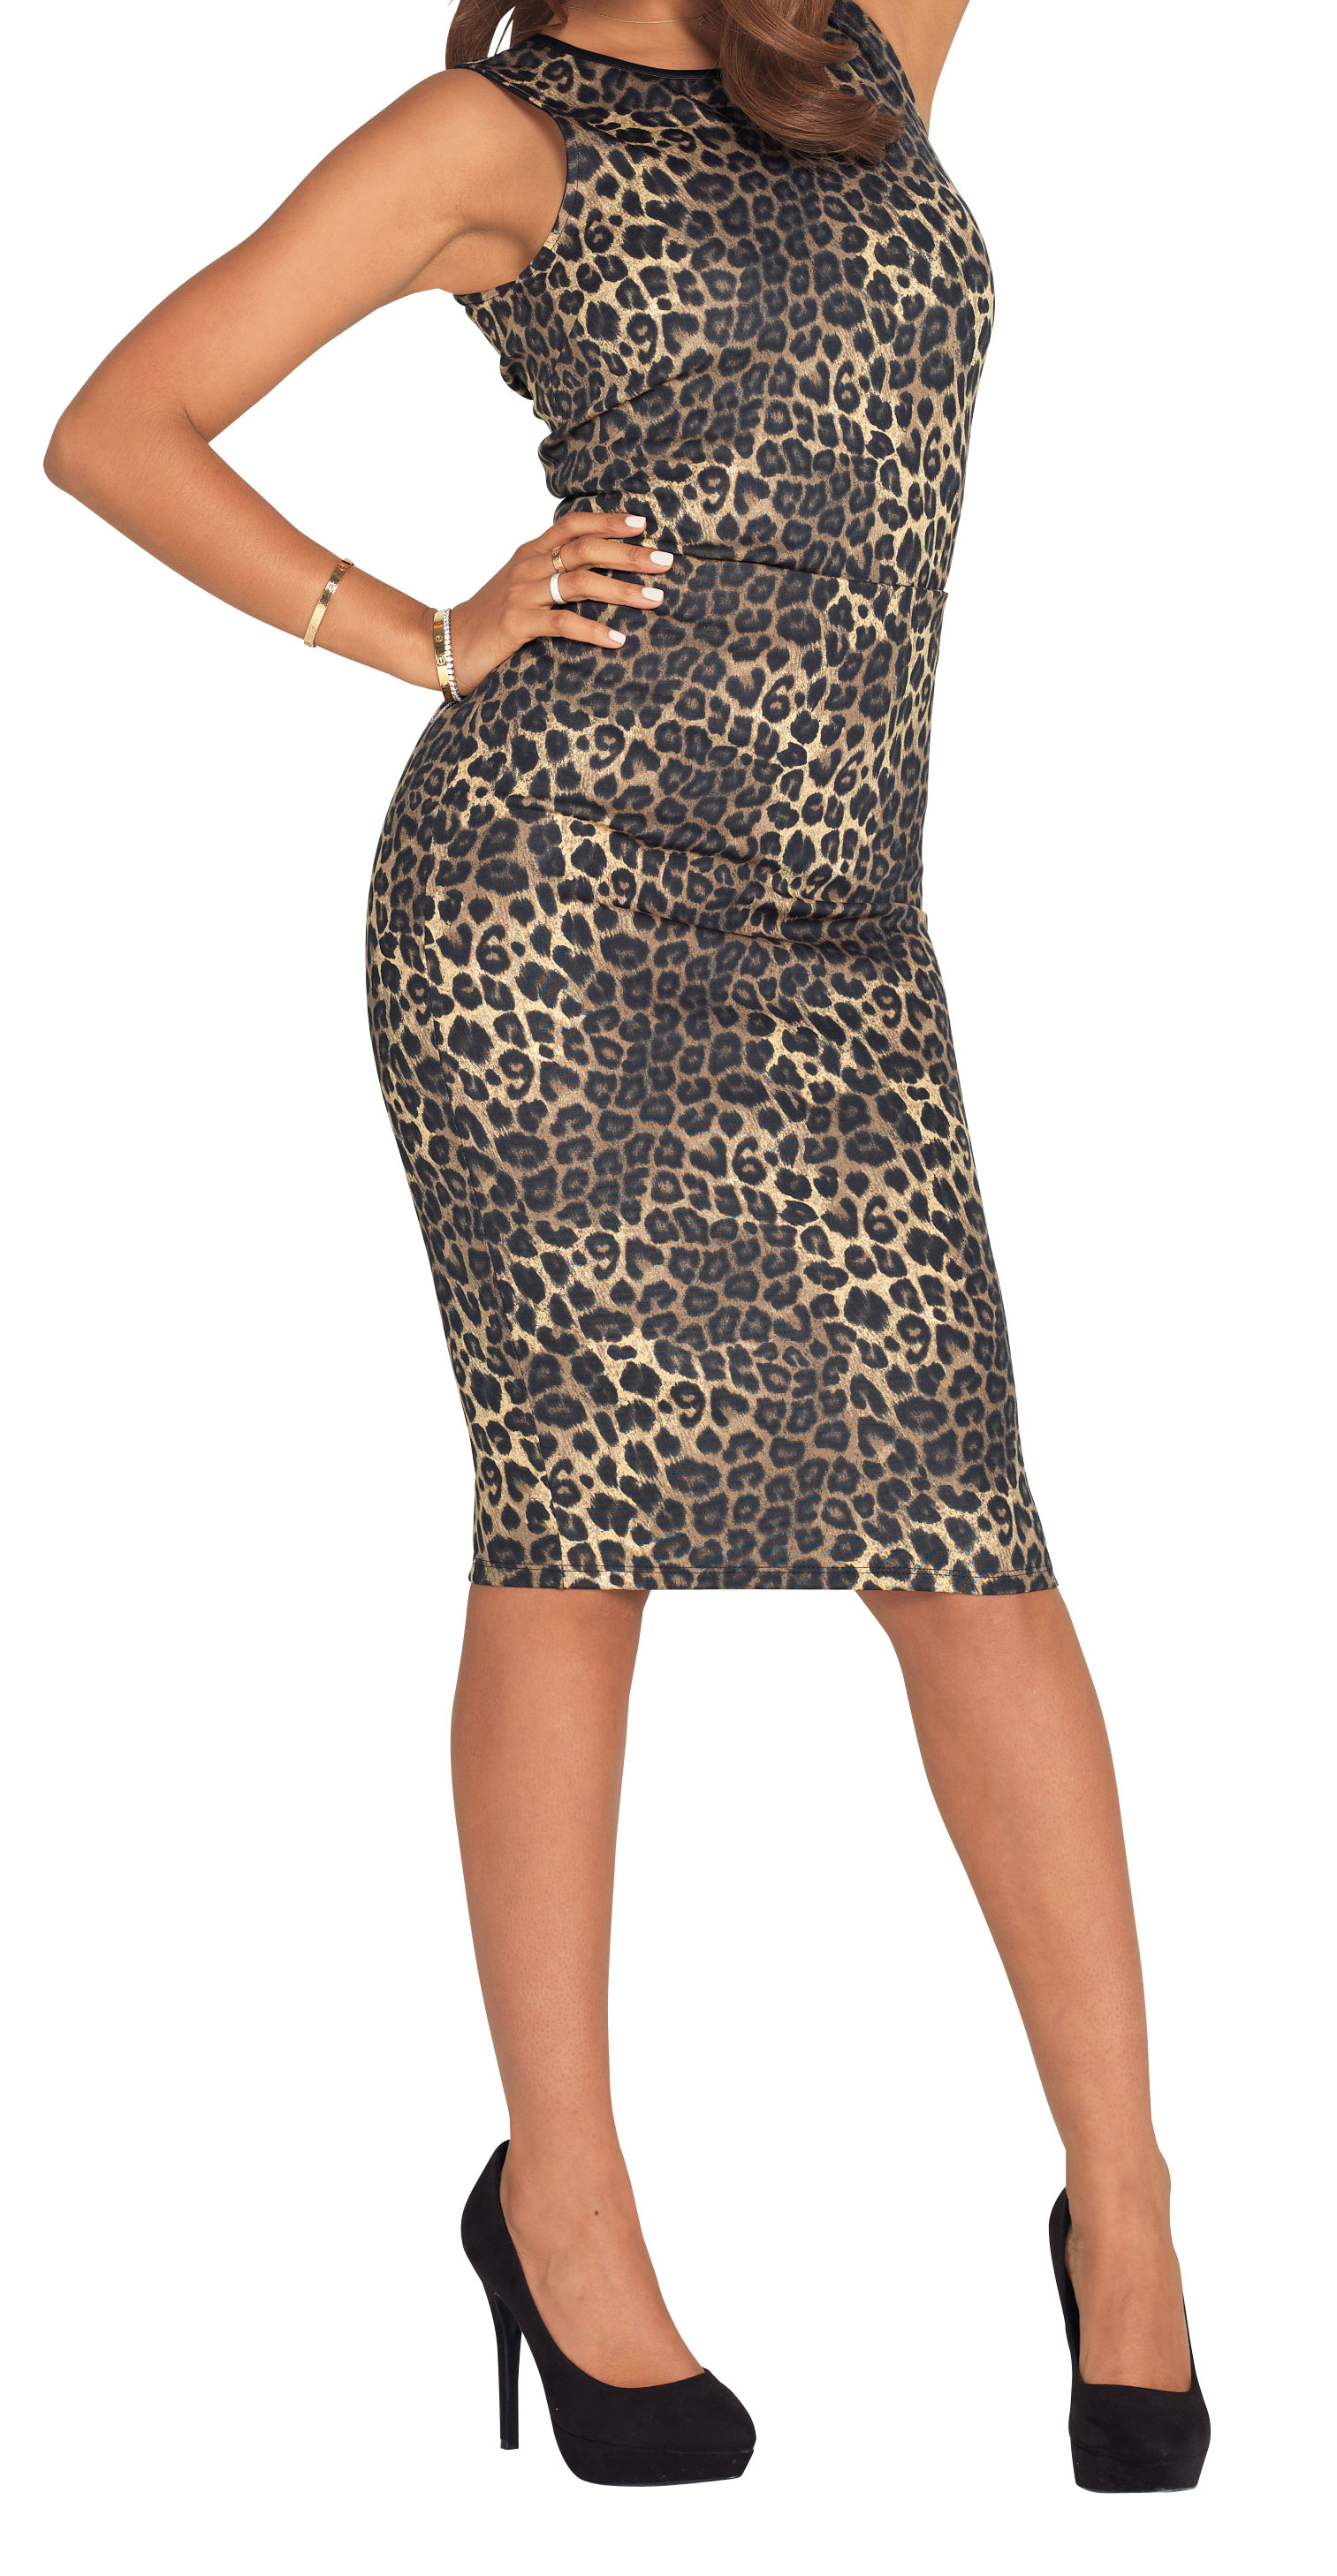 Very Animal Print Scuba Skirt